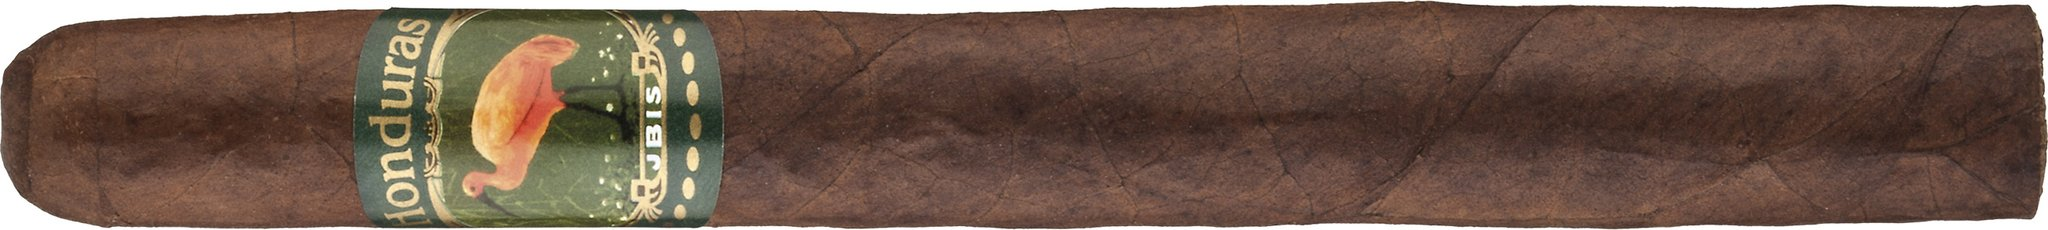 Ibis Honduran Selection Maduro Churchill